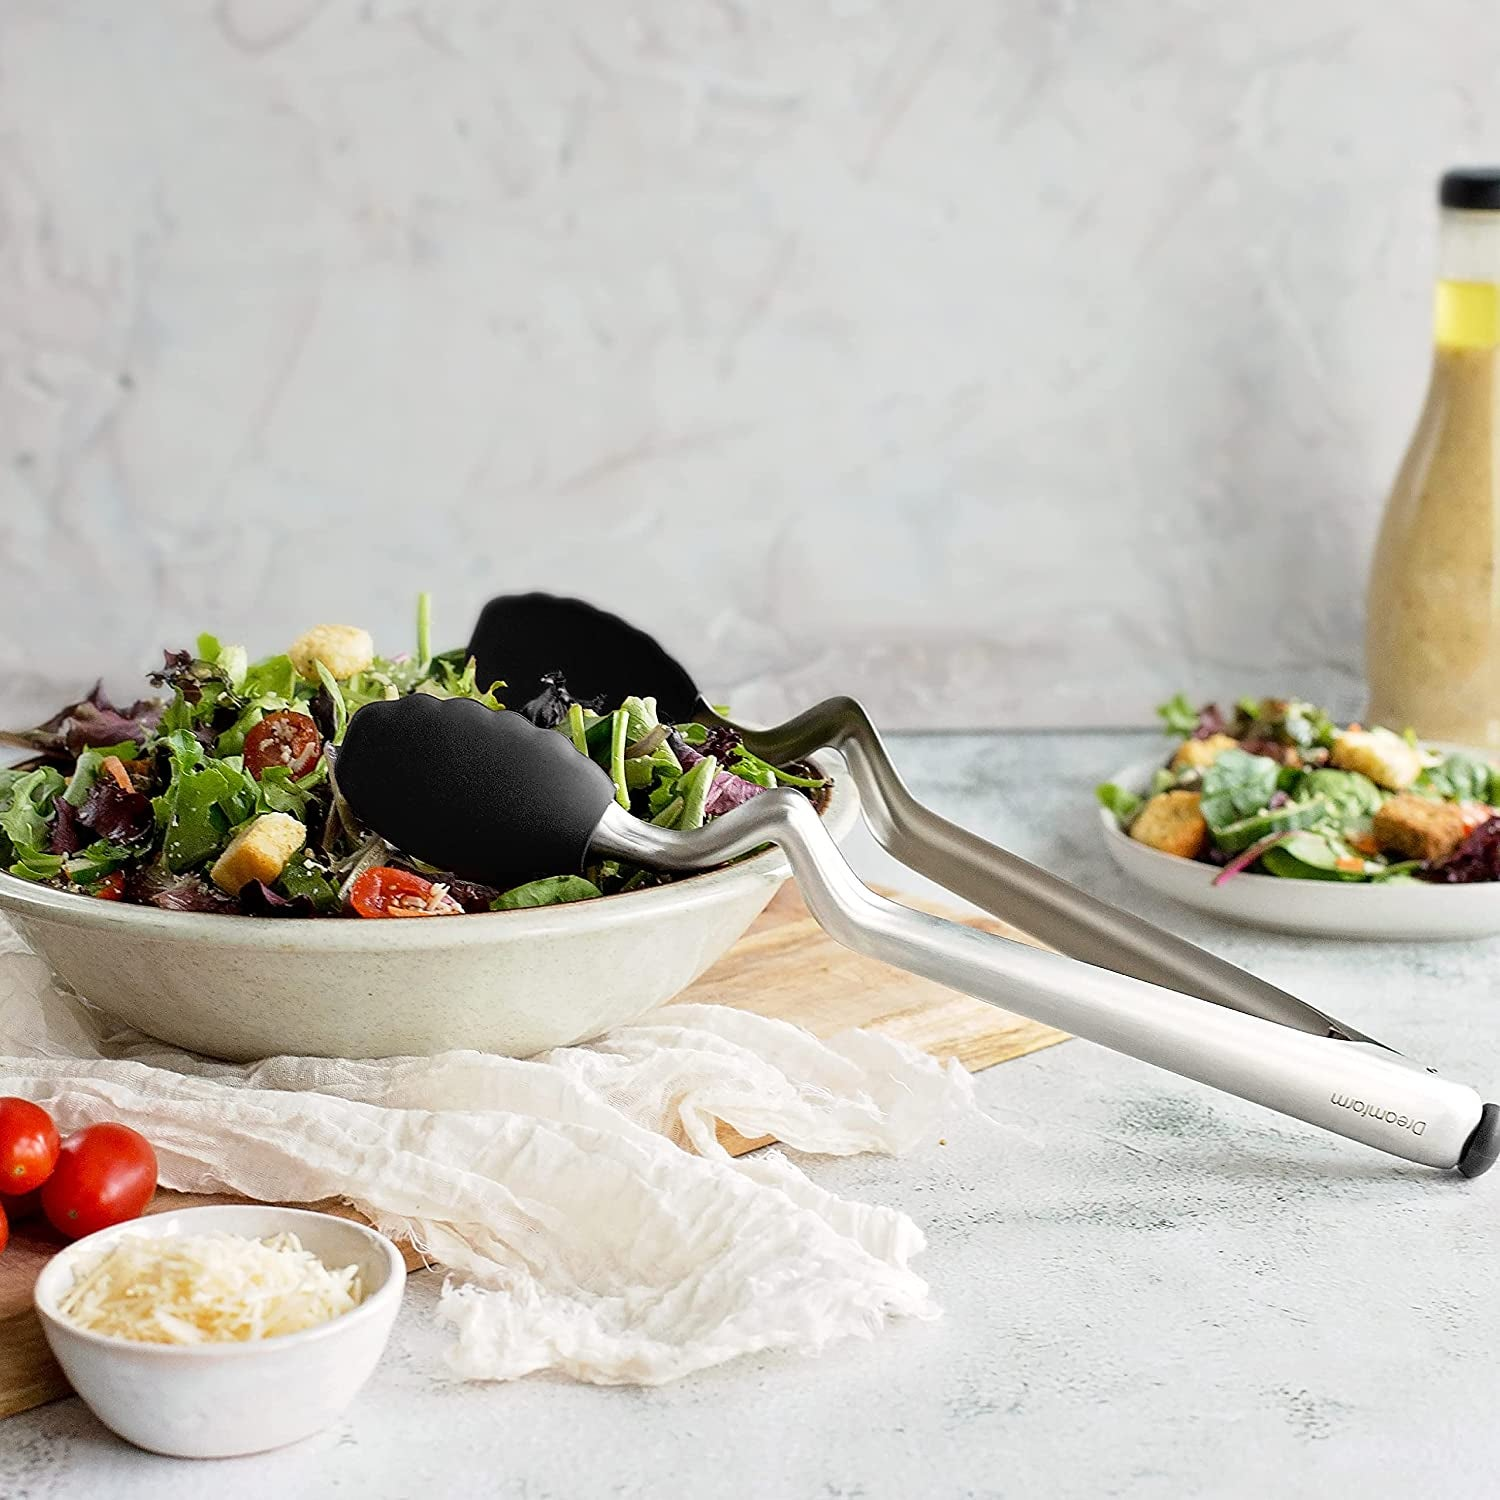 the tongs resting on a salad bowl